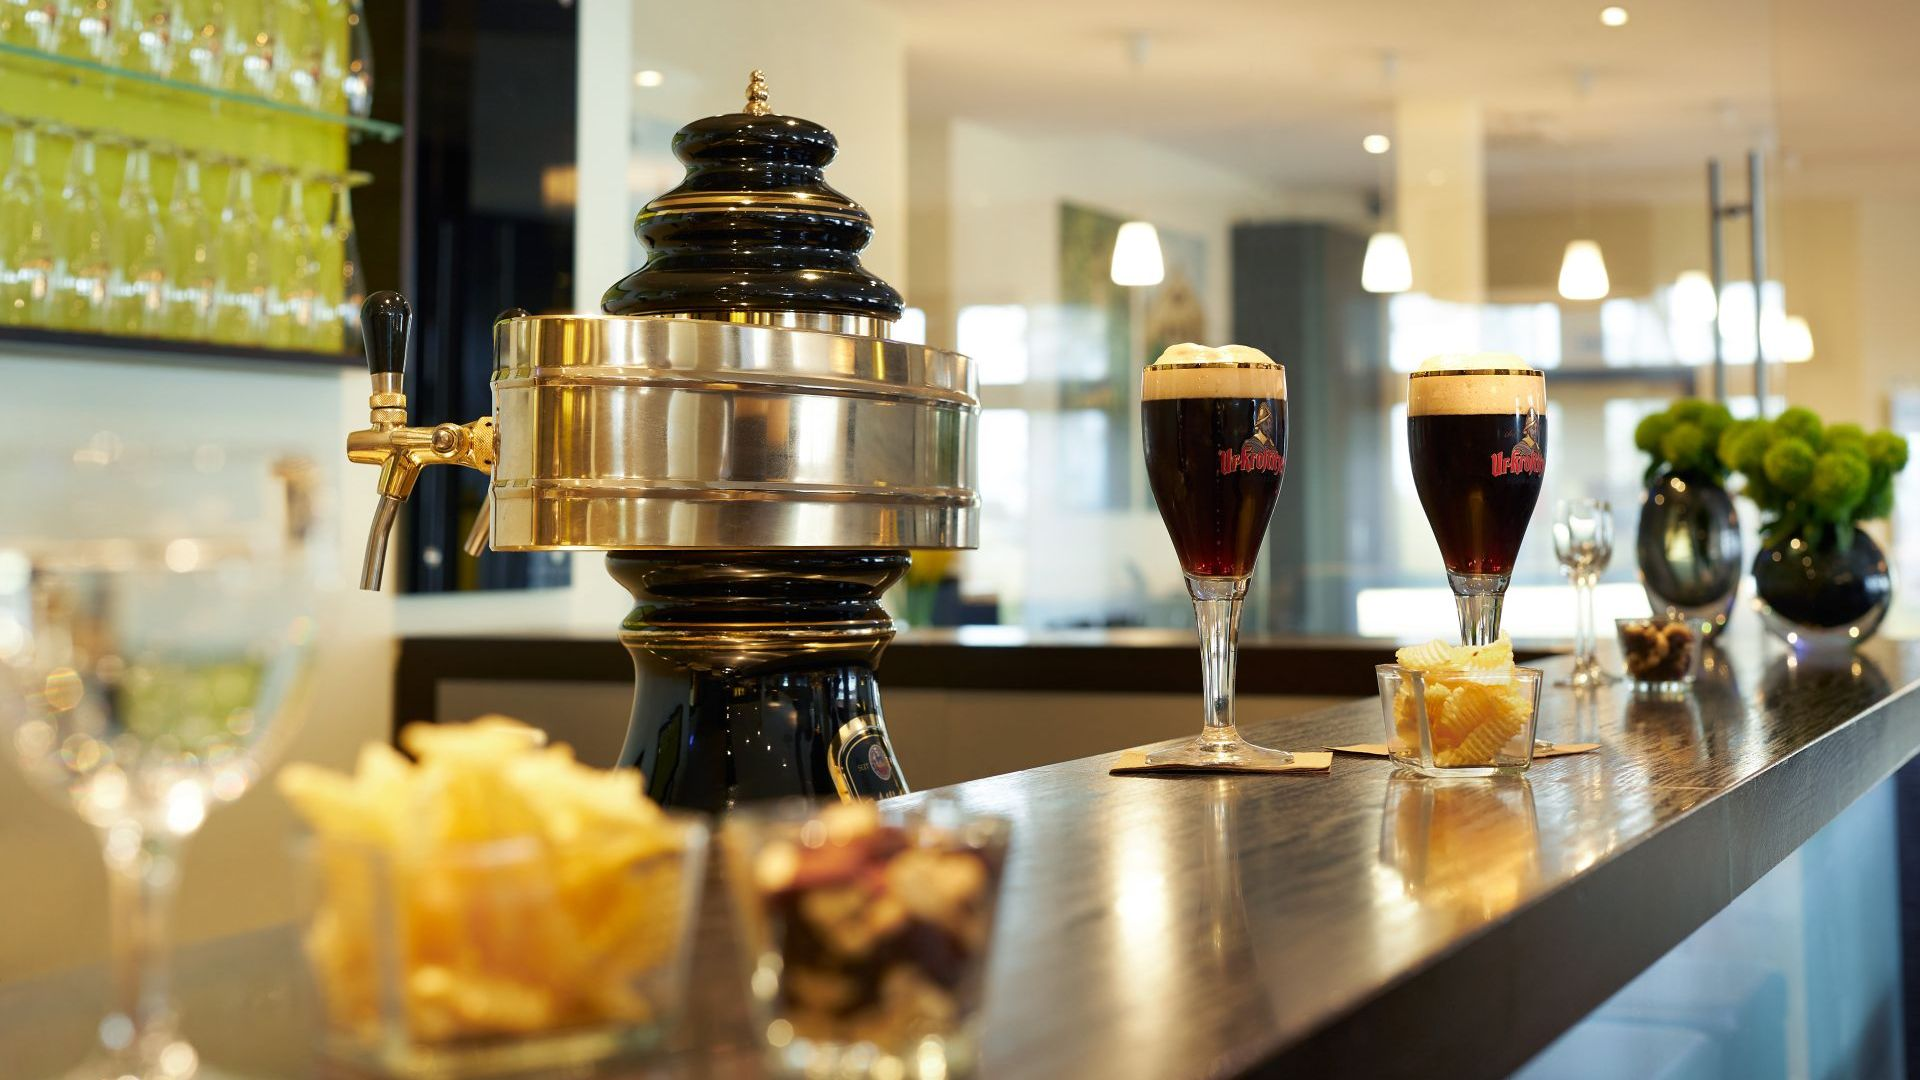 Classik-Hotel-Collection-Magdeburg-Restaurant-Drinks-Beer-Afternoon-Web